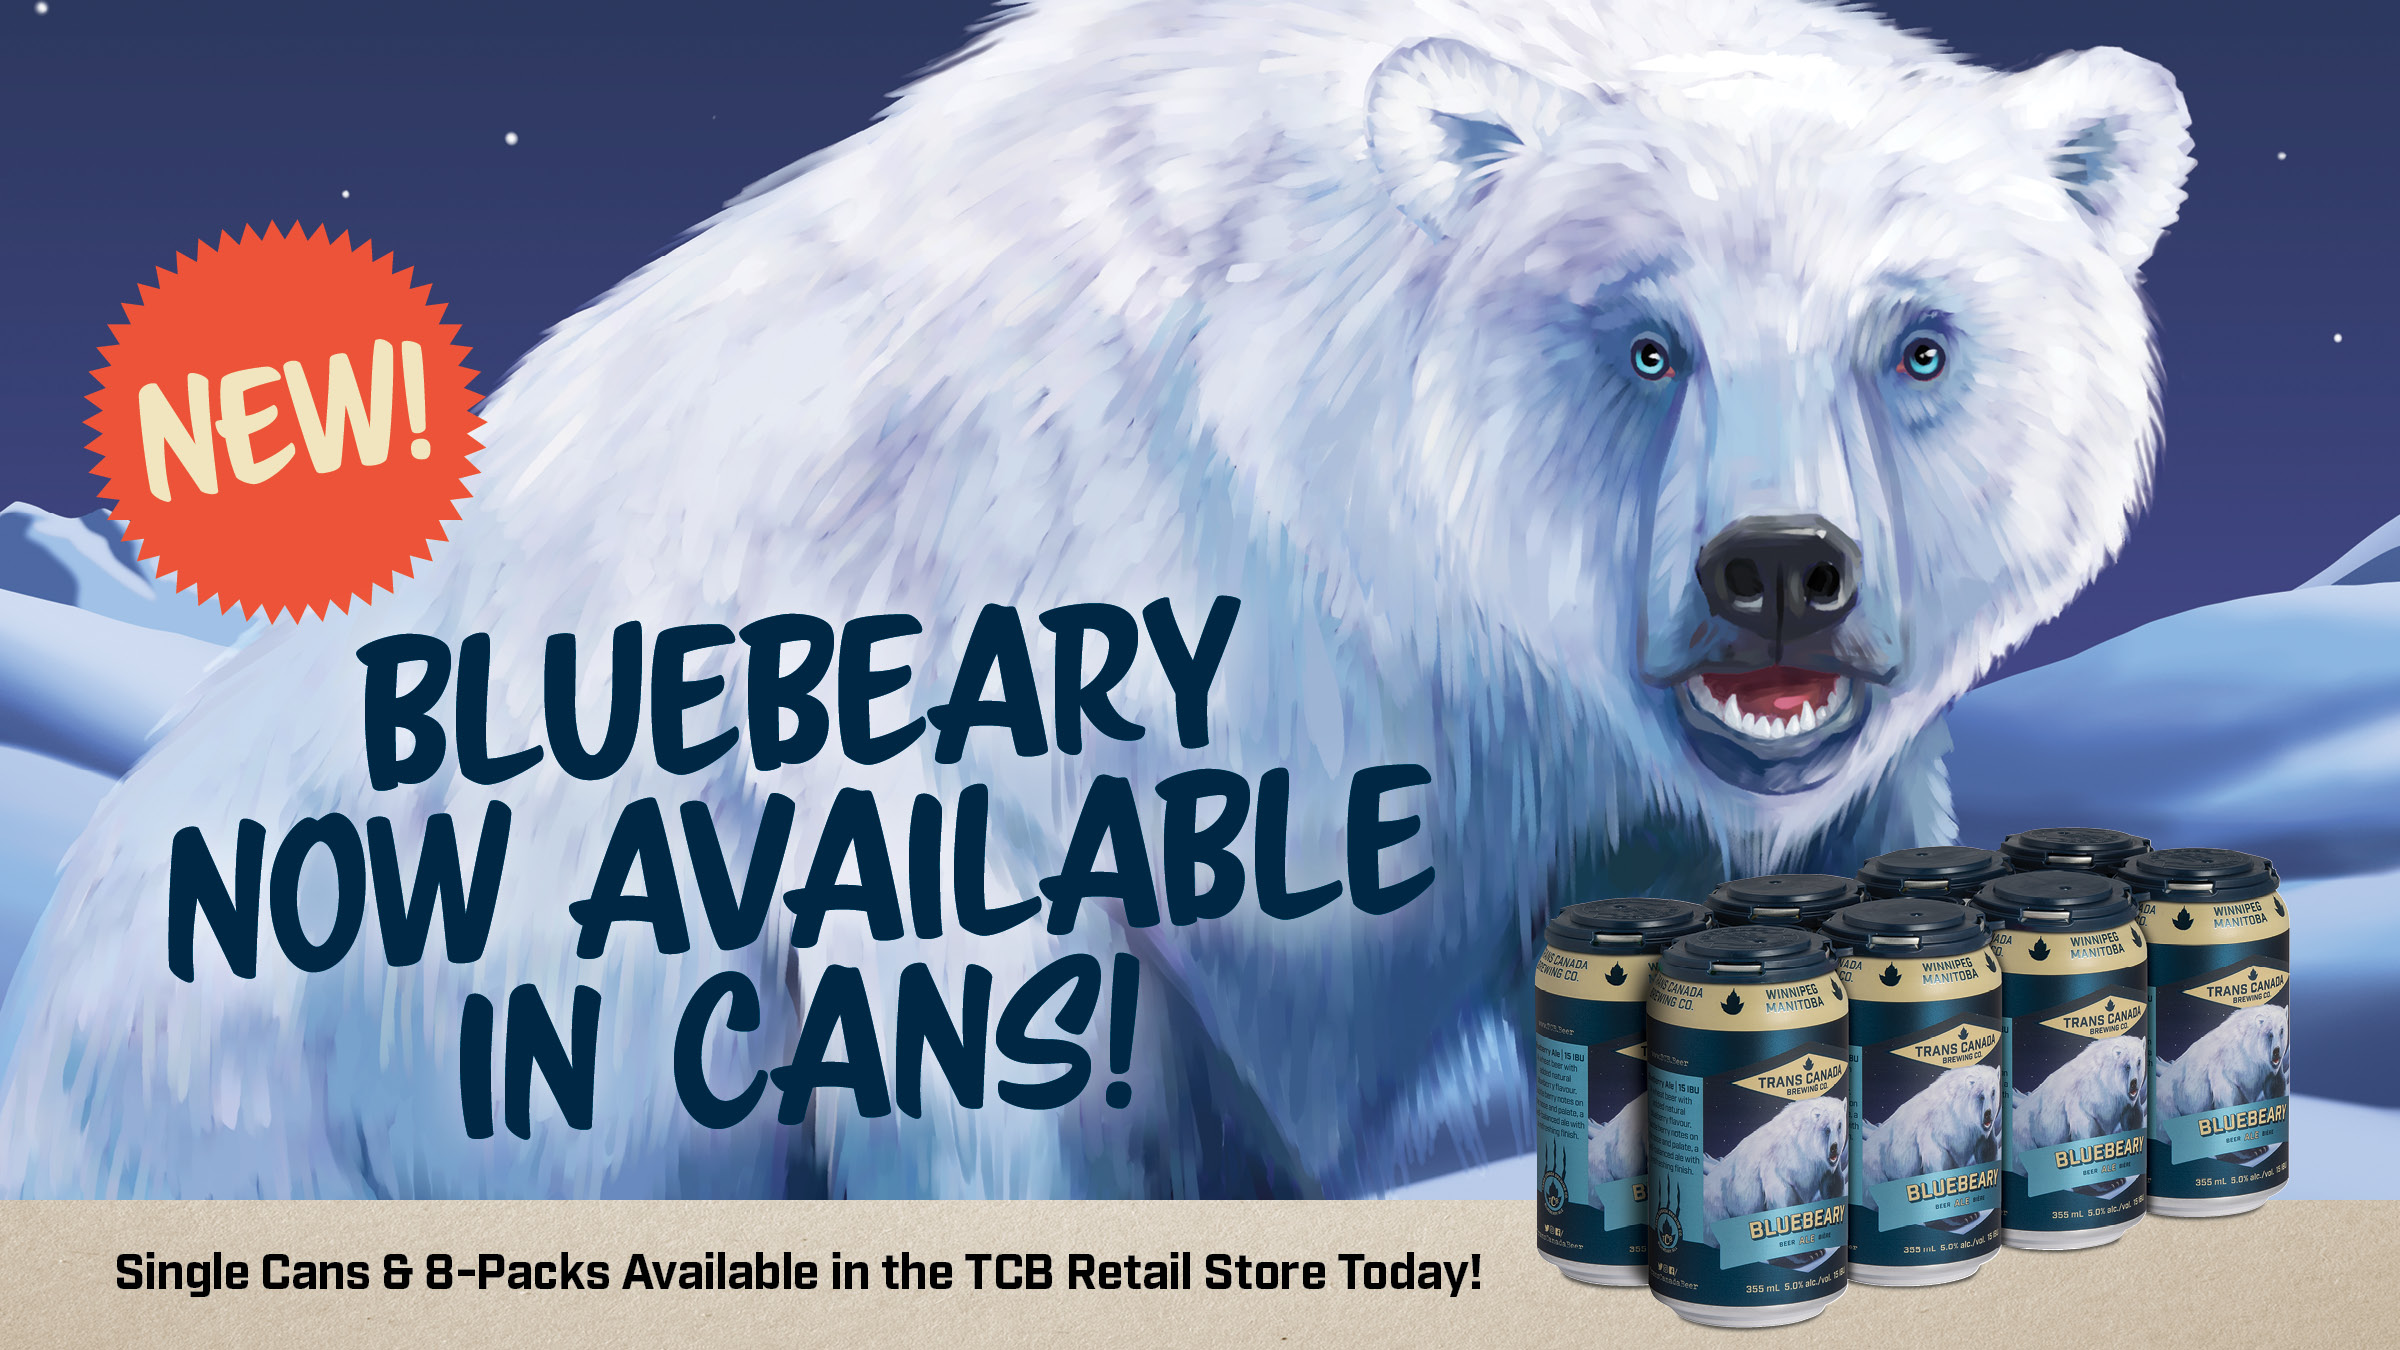 TCB Bluebeary Can Launch 20190621.jpg